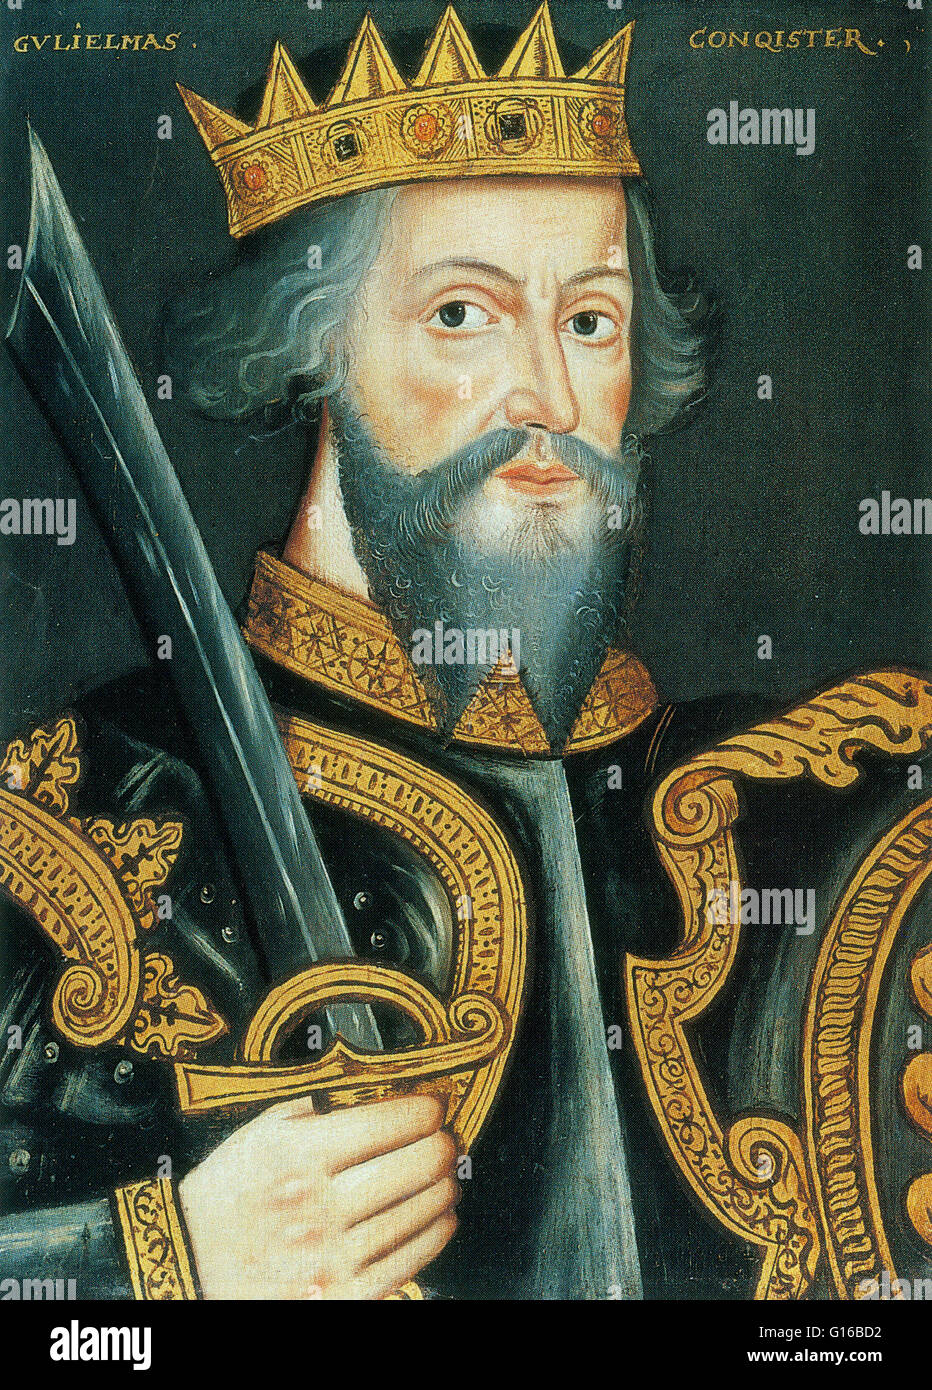 a biography of william i the conqueror Duke robert died when william was seven leaving him to rely on other men to rule his duchy until he came of age  i found the story of william the conqueror's .